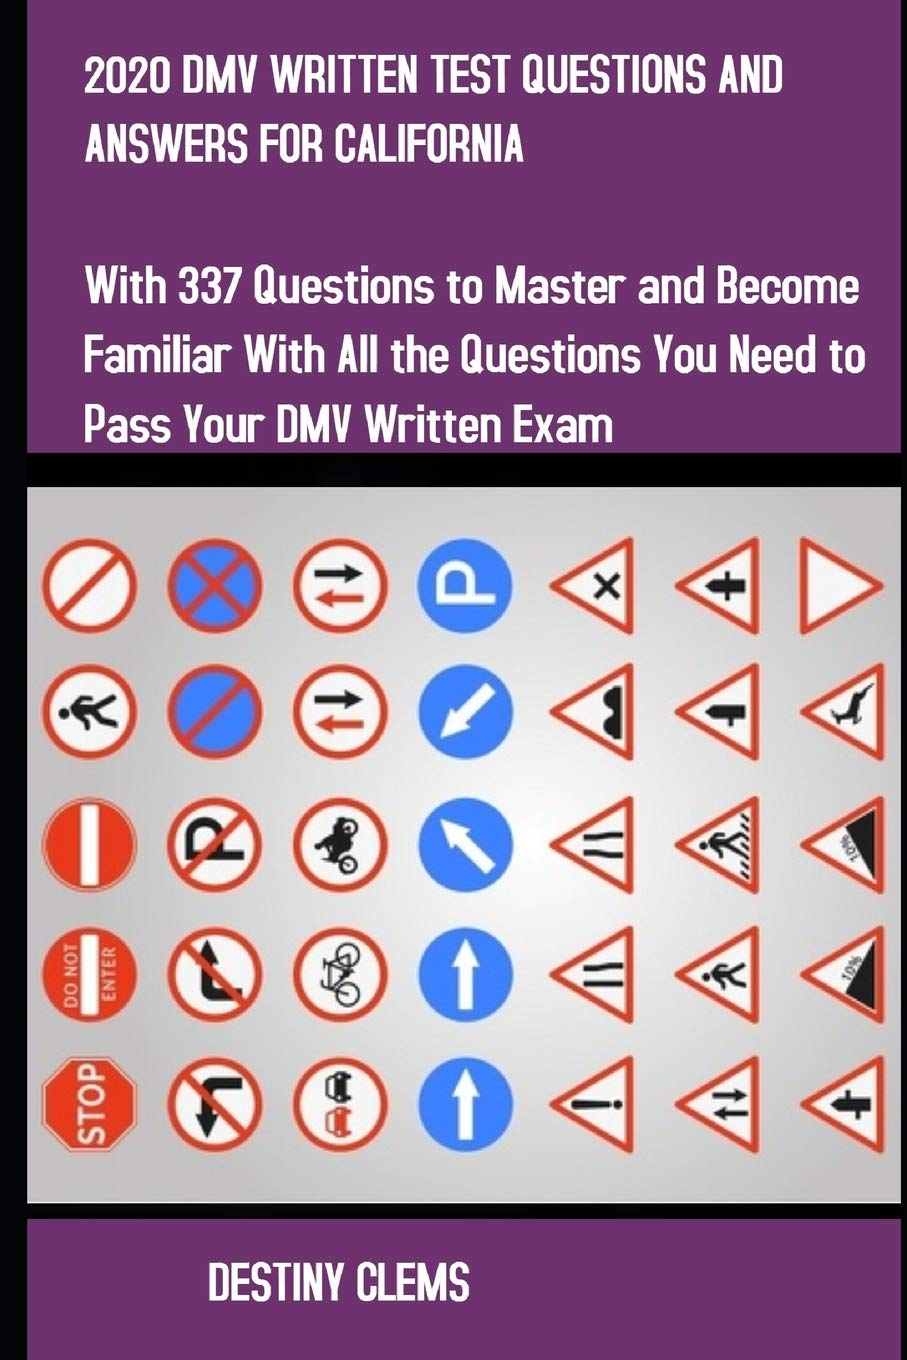 2020 Dmv Written Test Questions And Answers For California With 337 Questions To Master And Become Familiar With All The Questions You Need To Pass Your Dmv Written Exam Clems Destiny 9798643255451